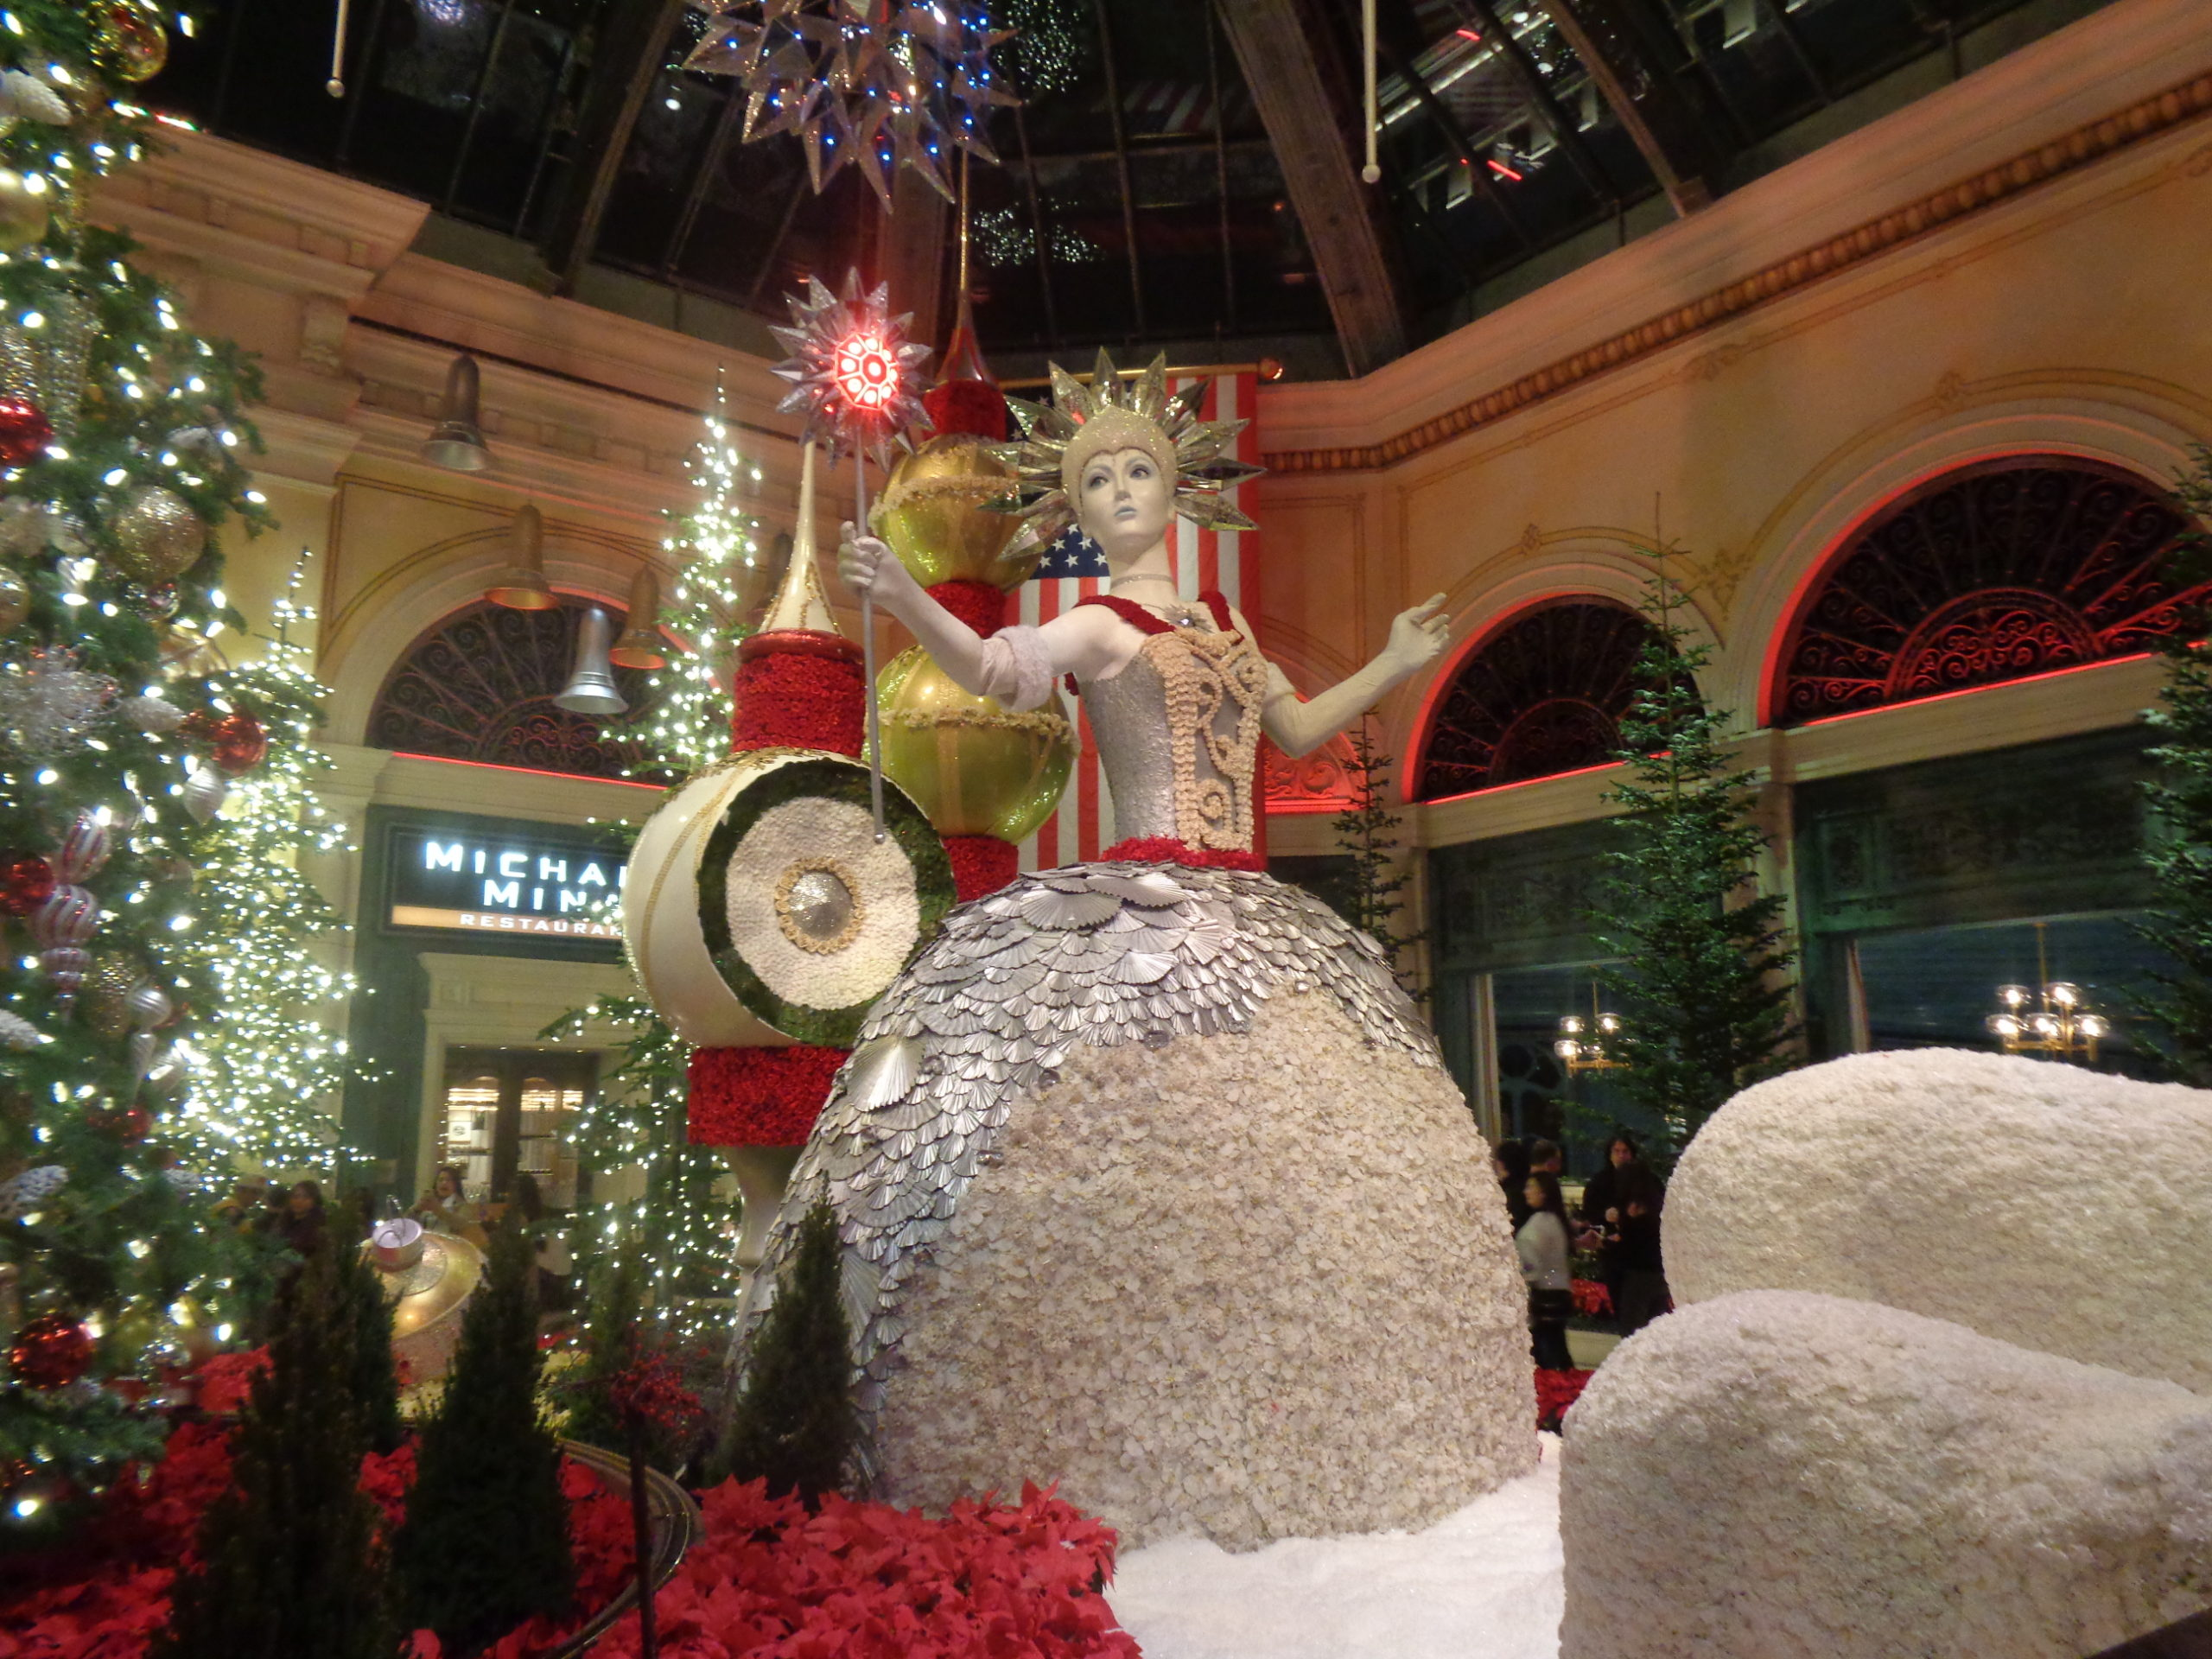 Bellagio At Christmas Time 2020 Bellagio Conservatory Captures the Spirit of the 2019 Holiday